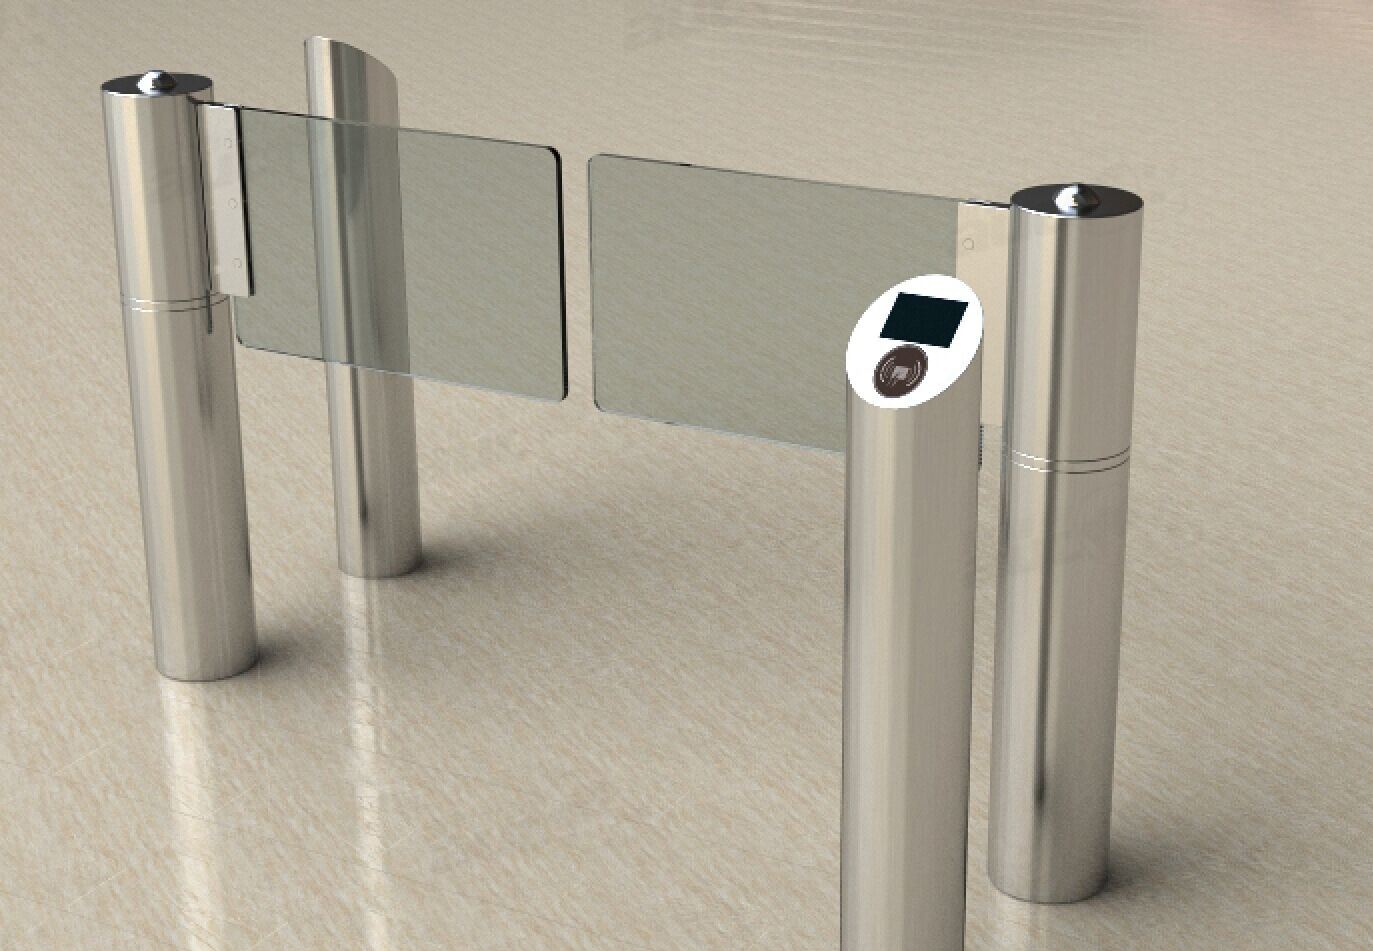 Access Control Full Automatic Swing Barrier Gate Th-Sbg201